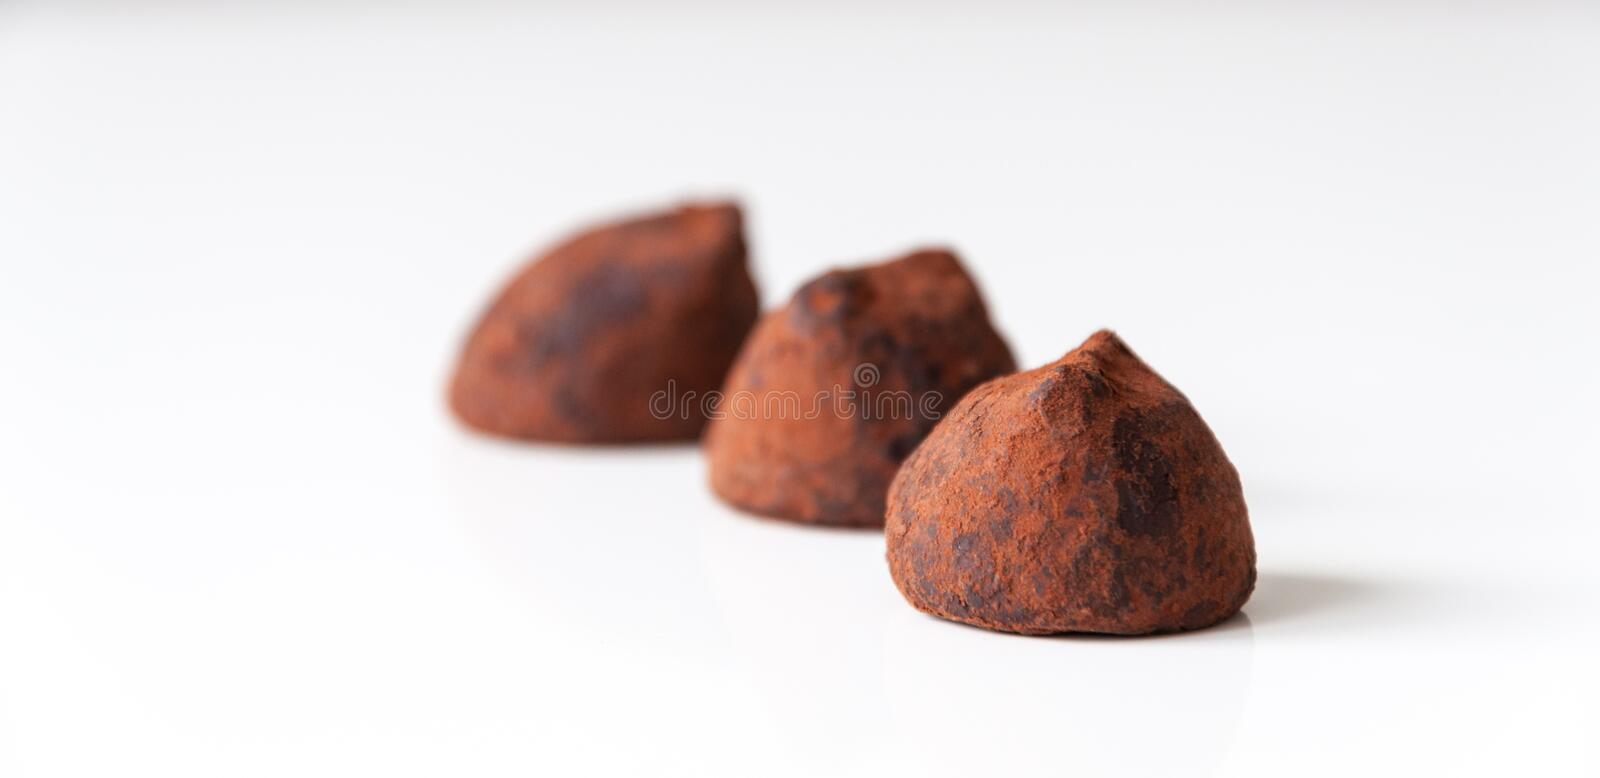 Truffels do chocolate imagem de stock royalty free